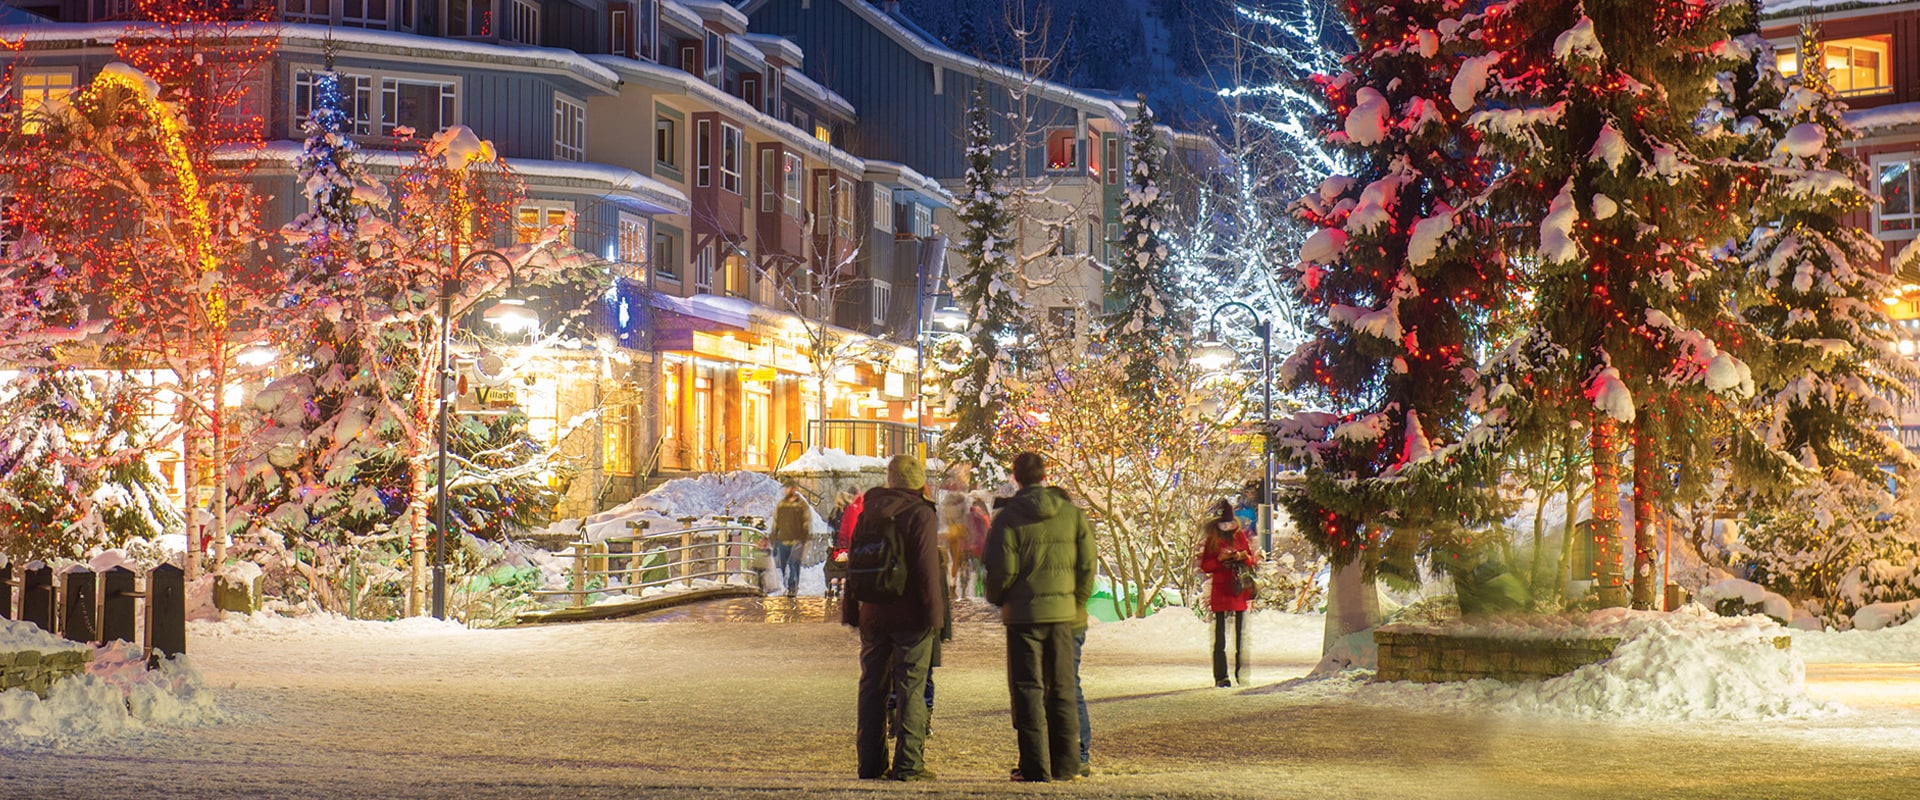 encompassing some of canadas most breathtaking snow coated landscapes this incredible journey showcases the beauty of this remarkable land - How Does Canada Celebrate Christmas